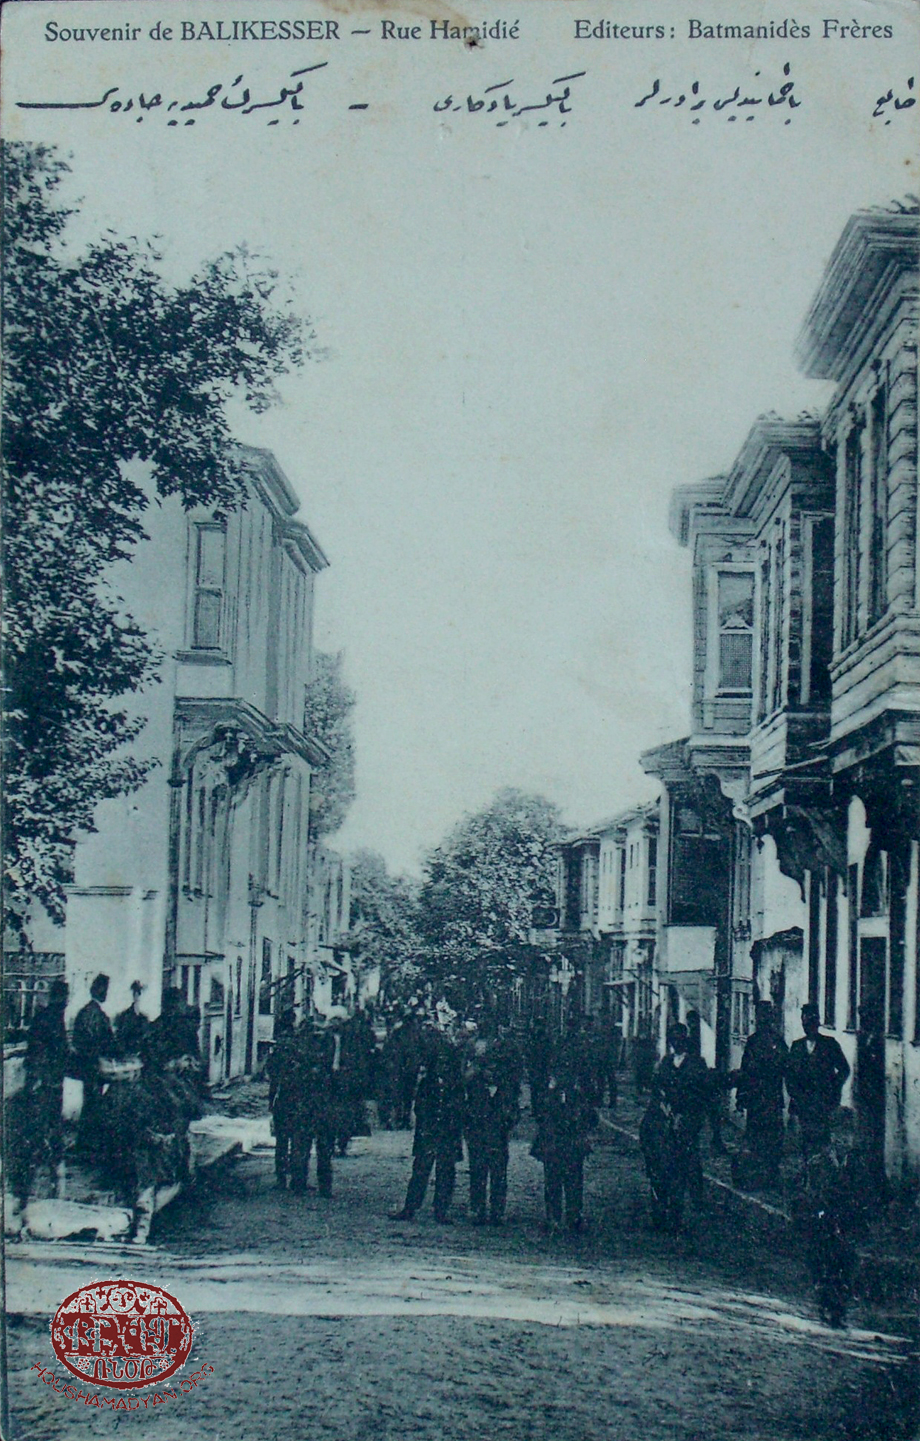 Balıkesir (Source: Michel Paboudjian collection, Paris)